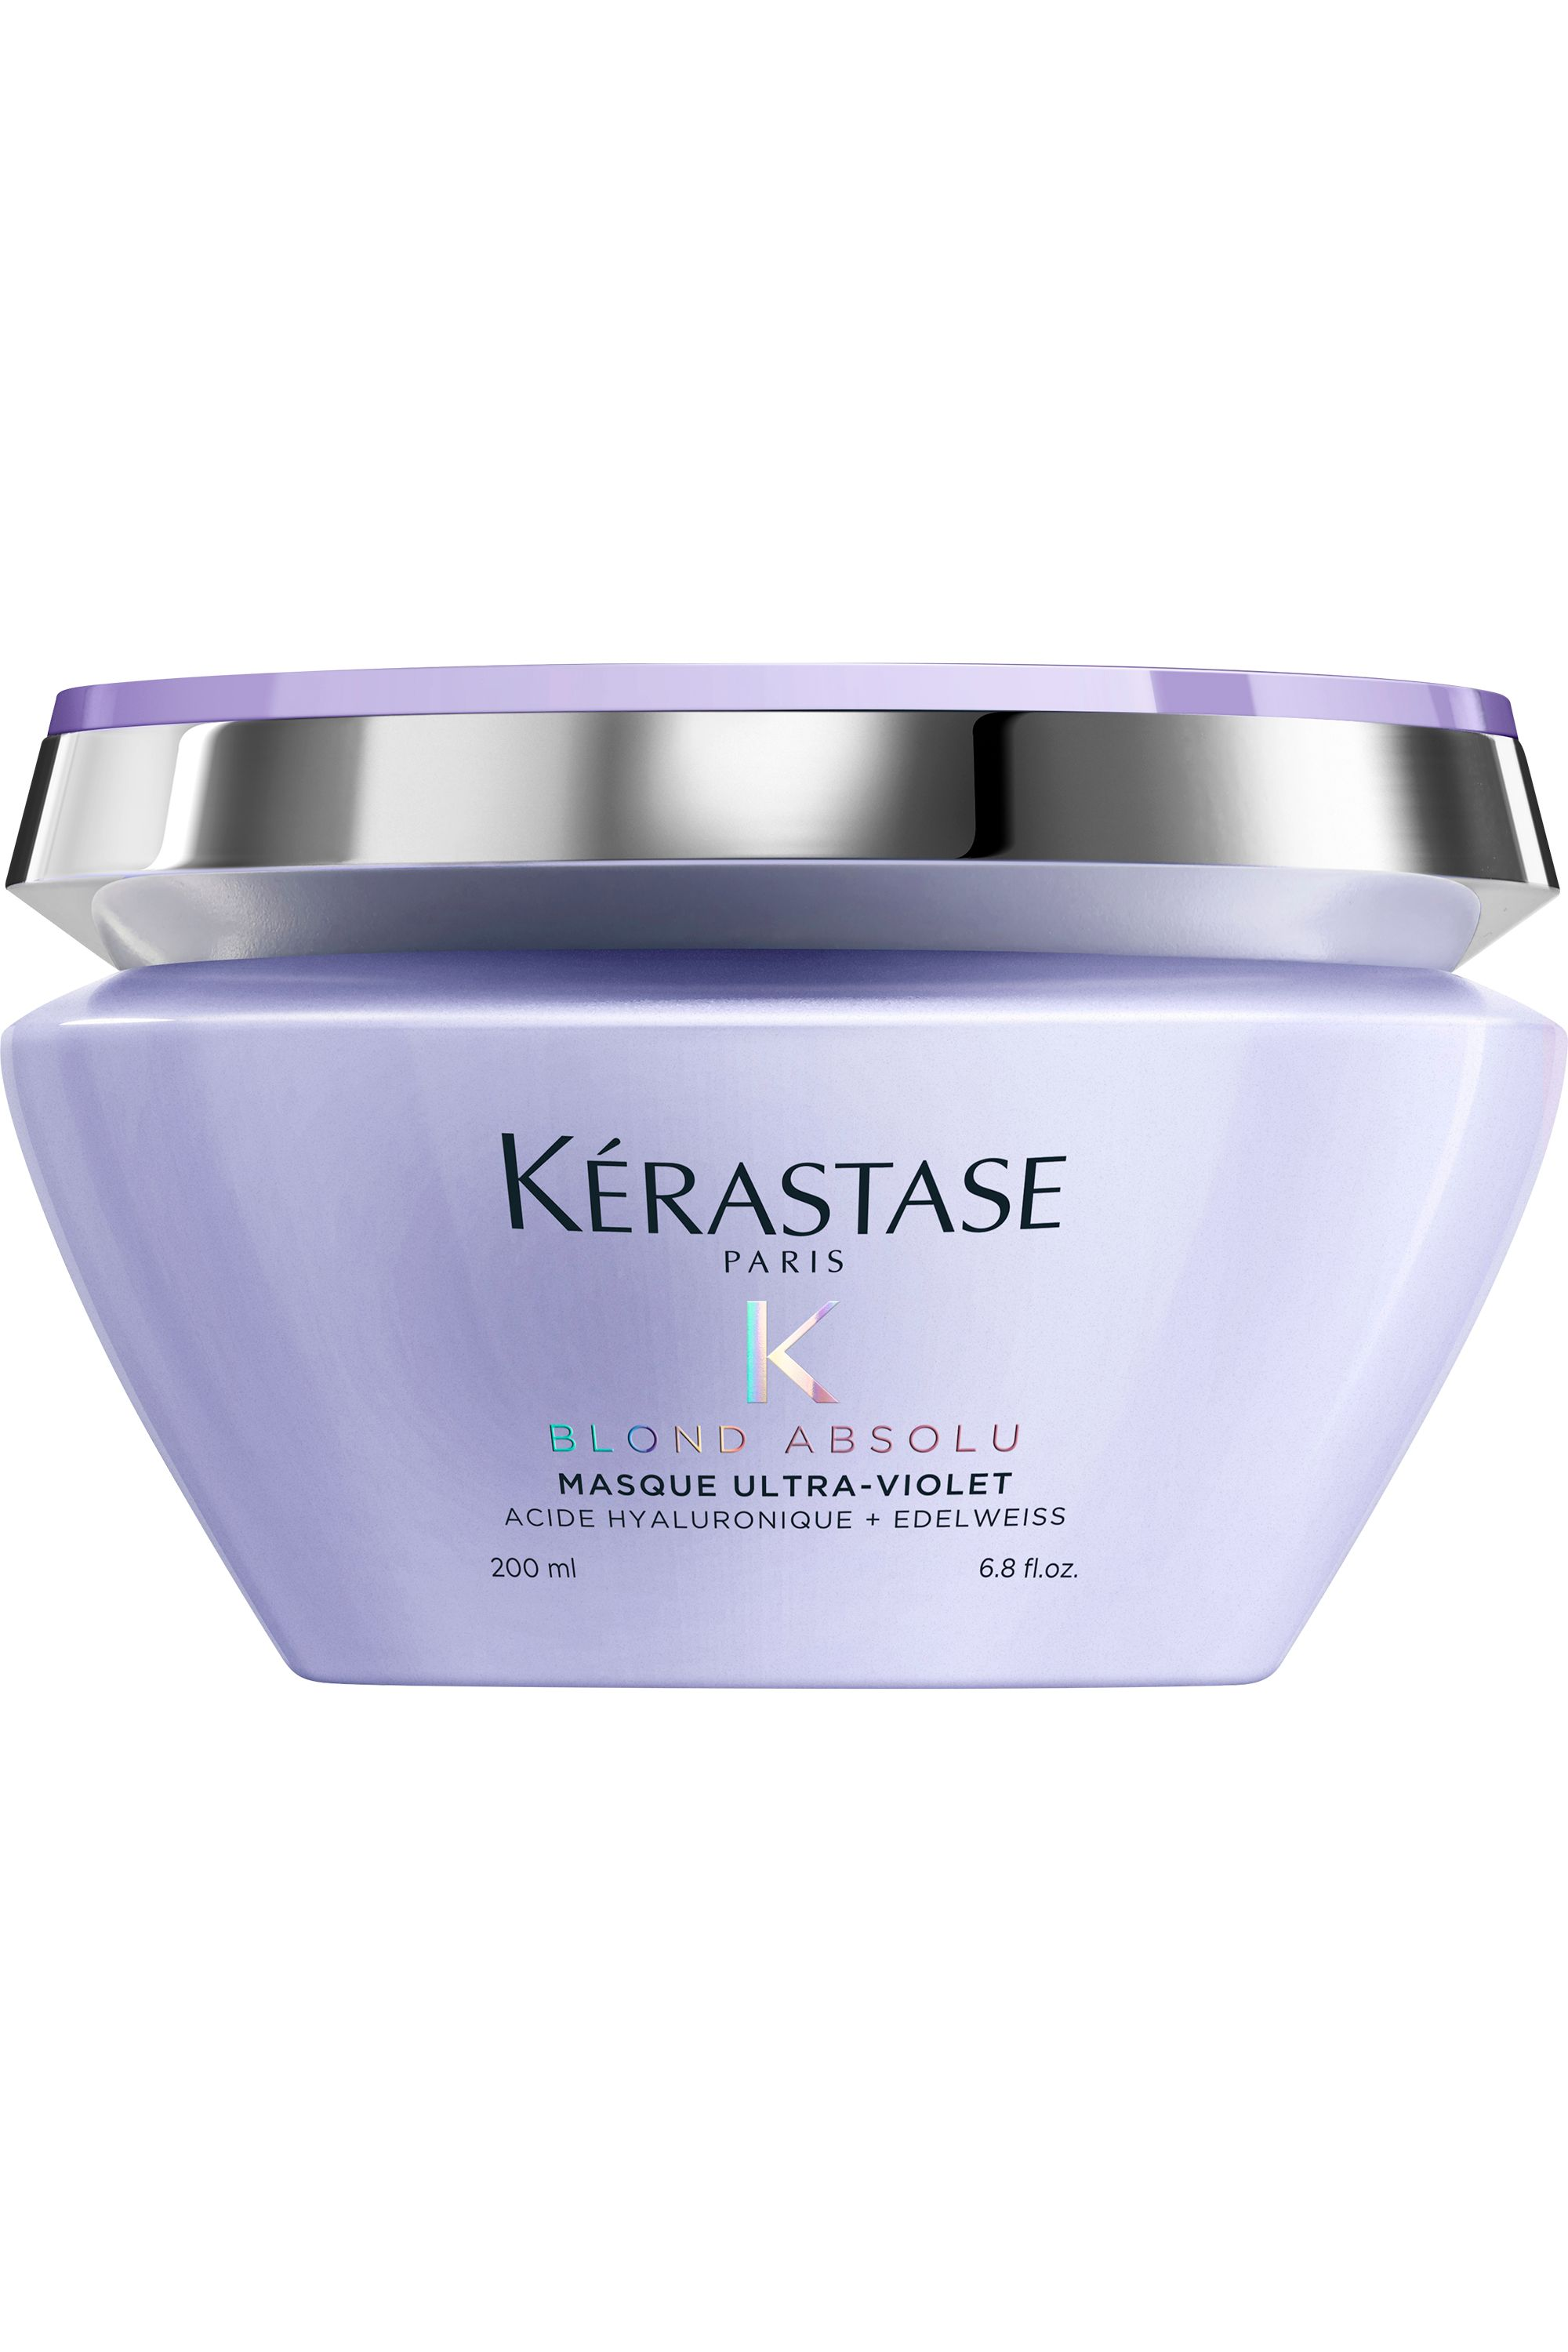 Blissim : Kérastase - Masque ultra-violet Blond Absolu - Masque ultra-violet Blond Absolu